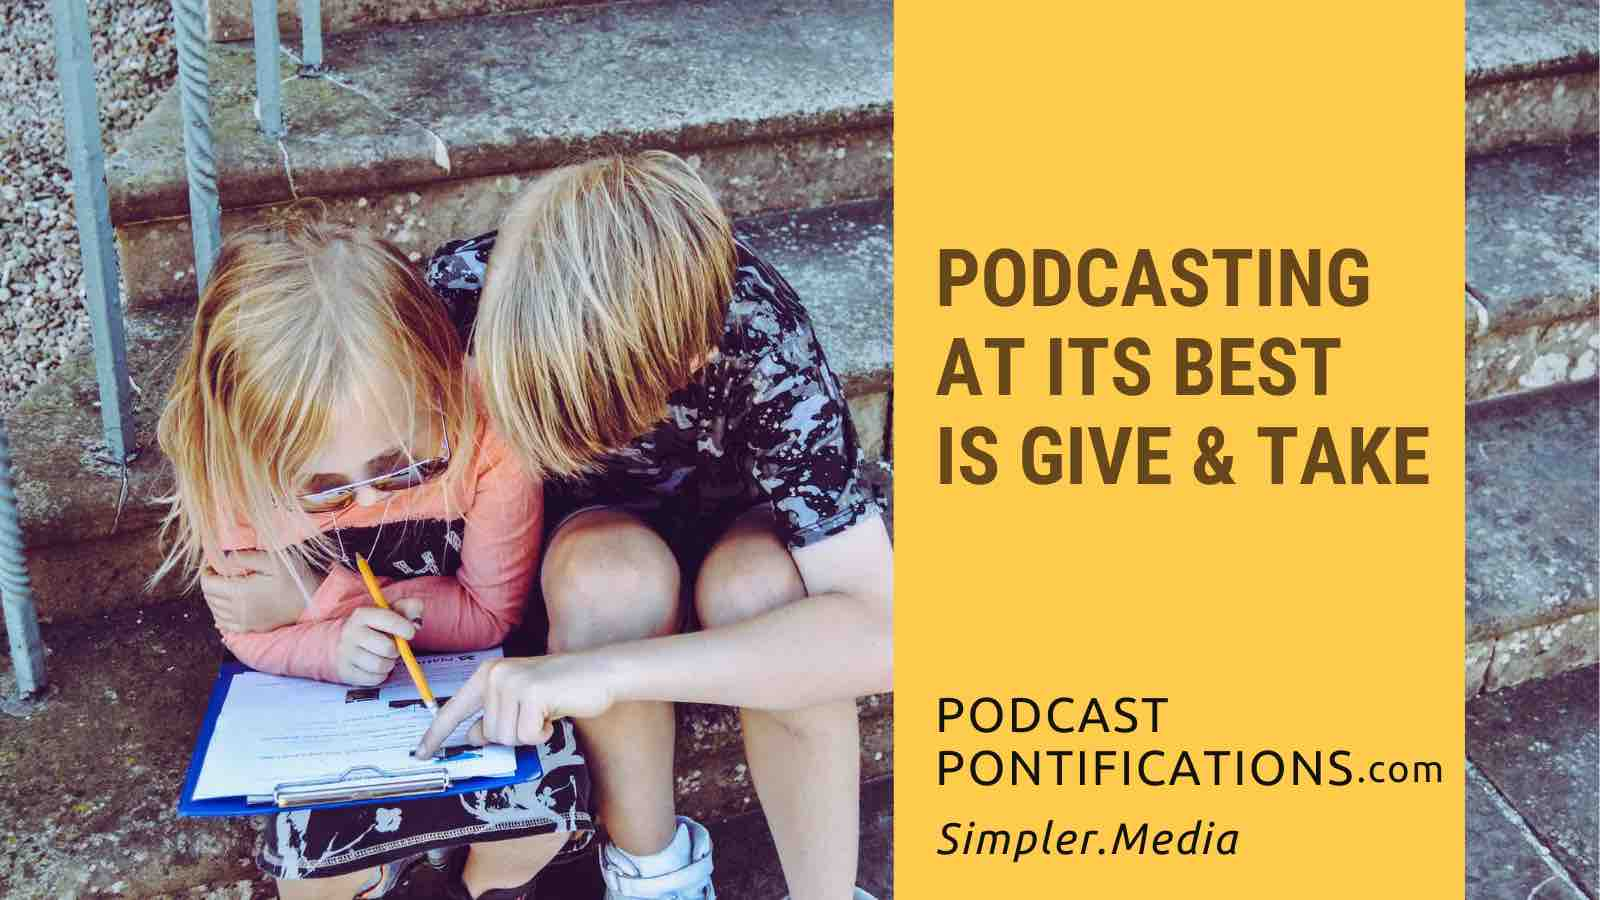 Podcasting At Its Best Is Give & Take